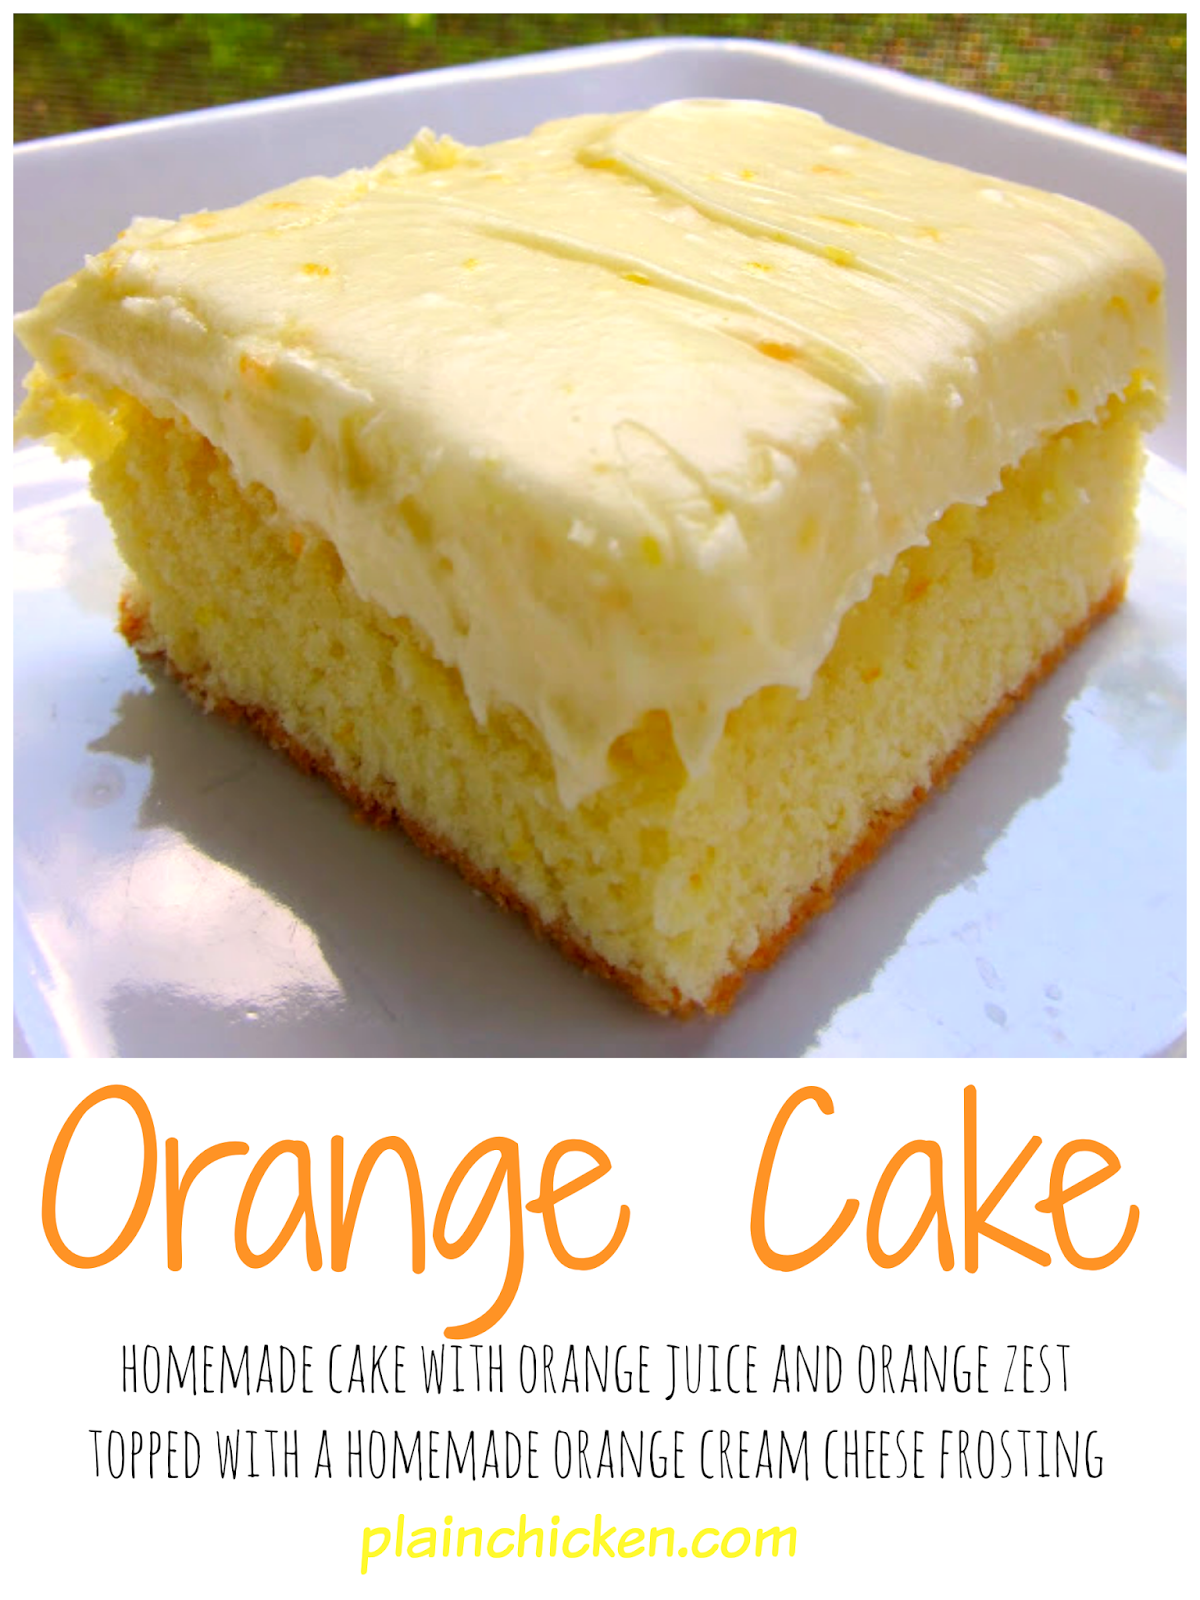 Orange Cake Recipe - homemade cake with orange juice and orange zest ...